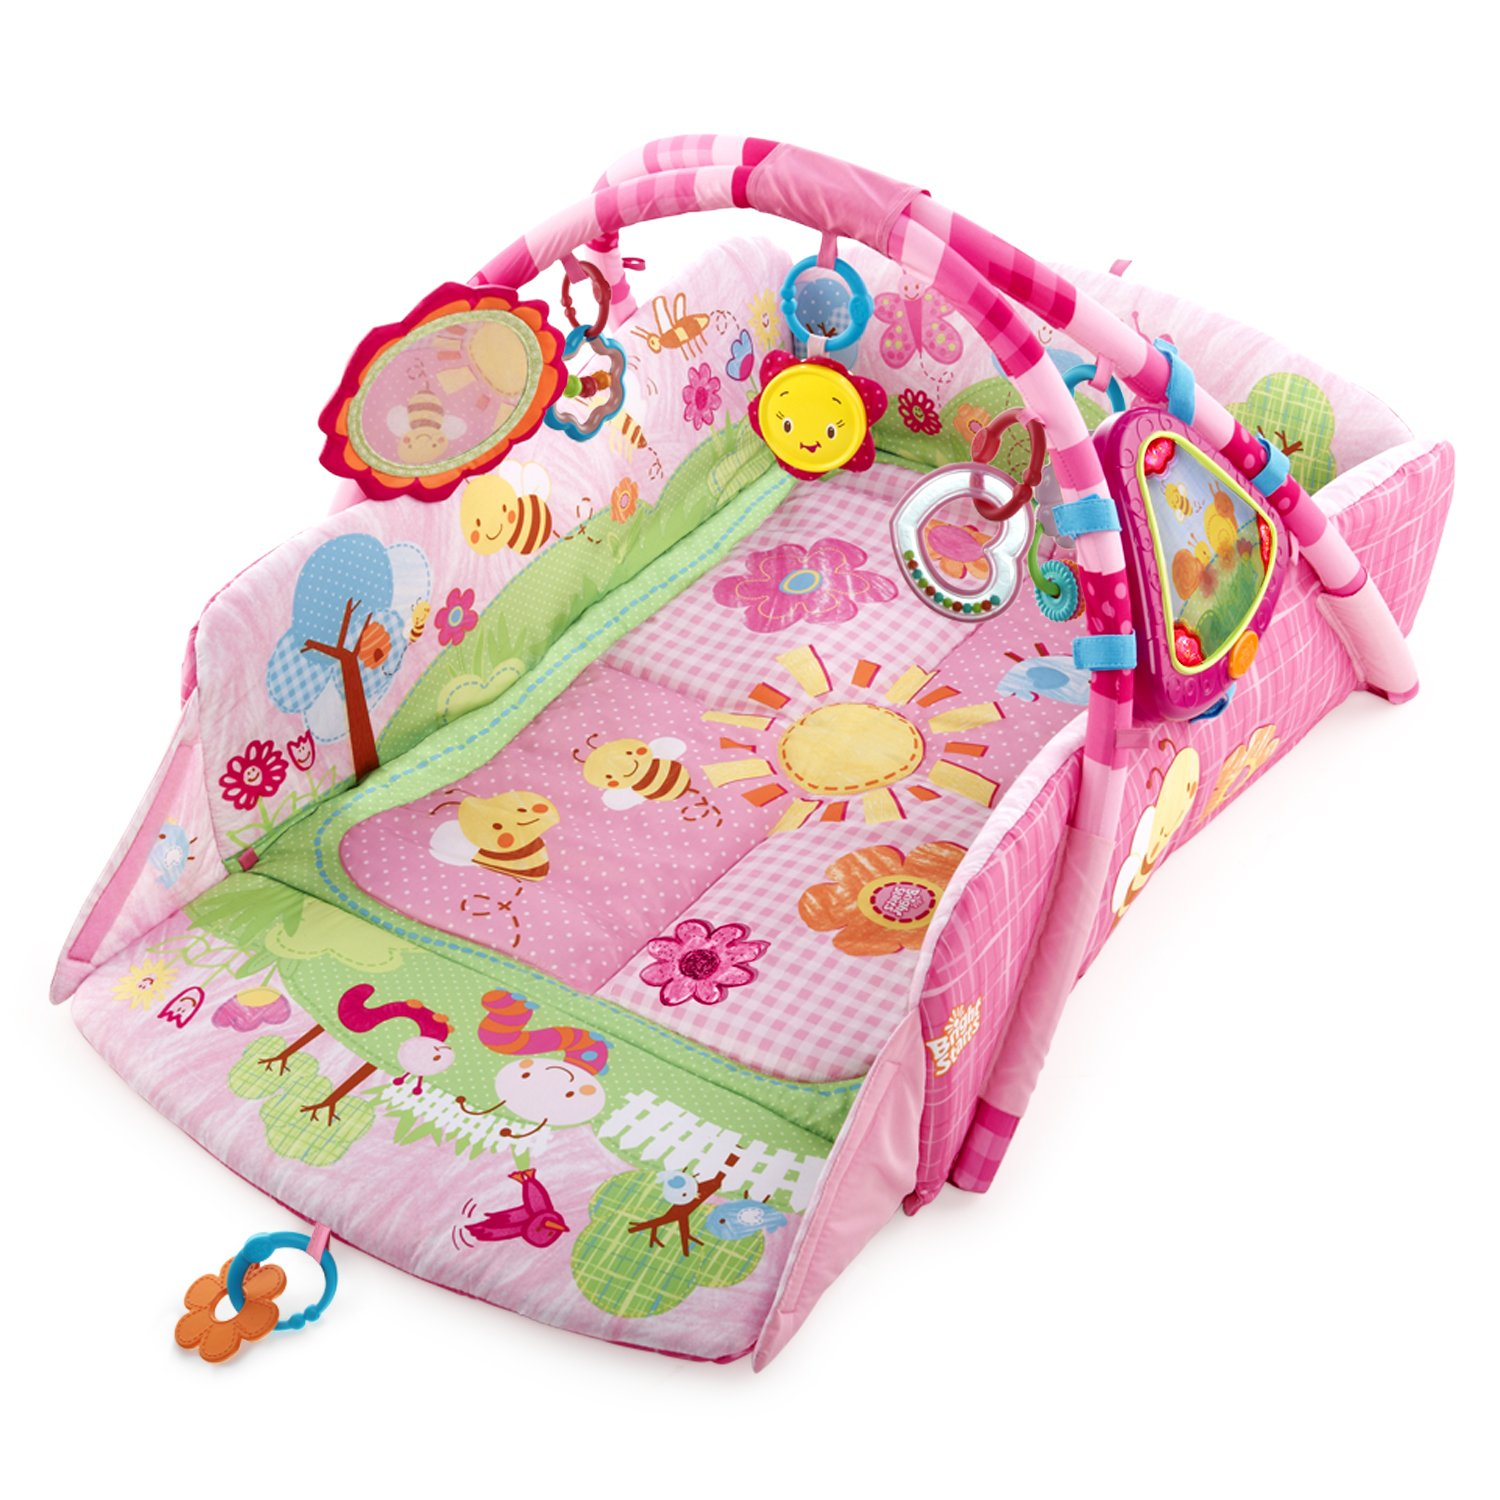 Bright Starts Tapis Déveil 5in1 Garden Fun Babys Play Place Deluxe